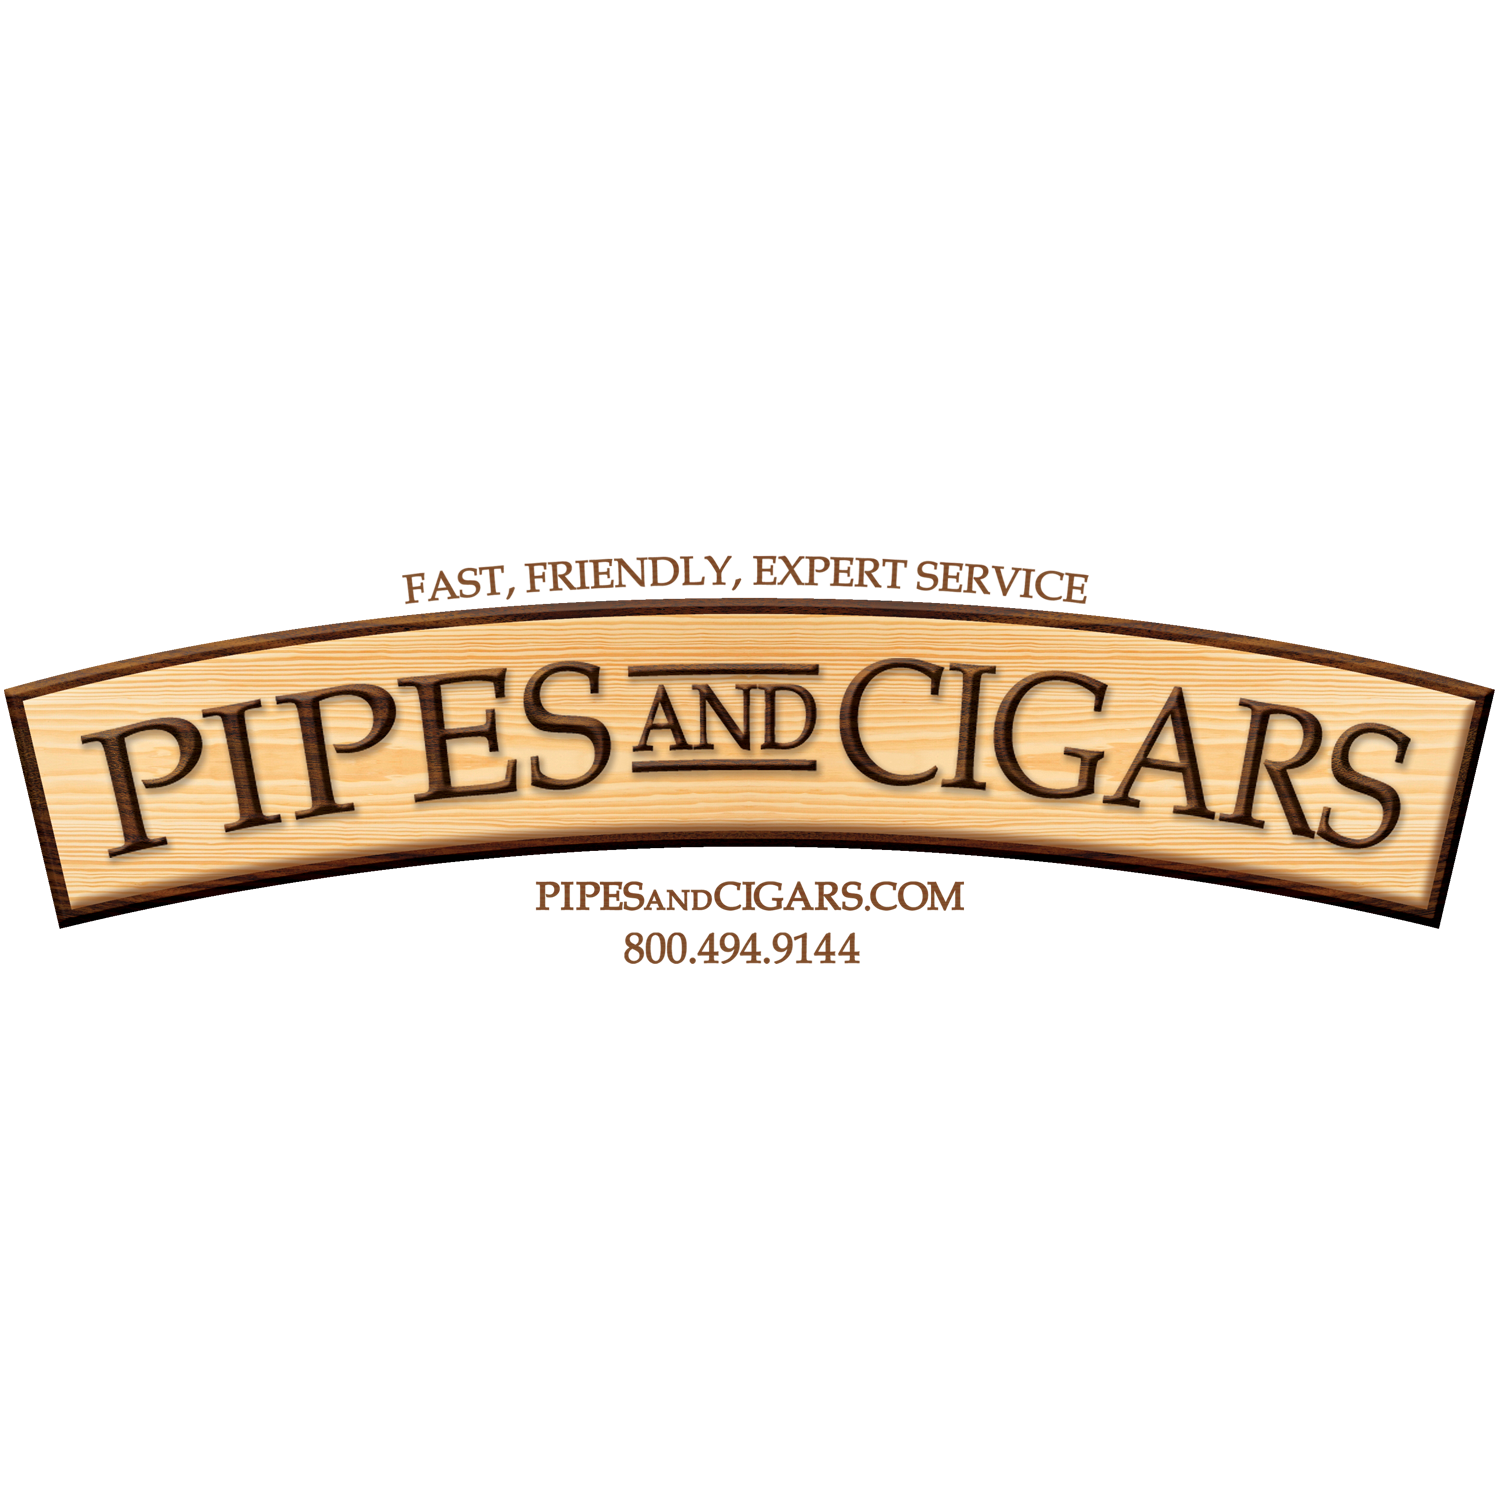 Cigar clipart corn cob pipe. Diesel pipes and cigars